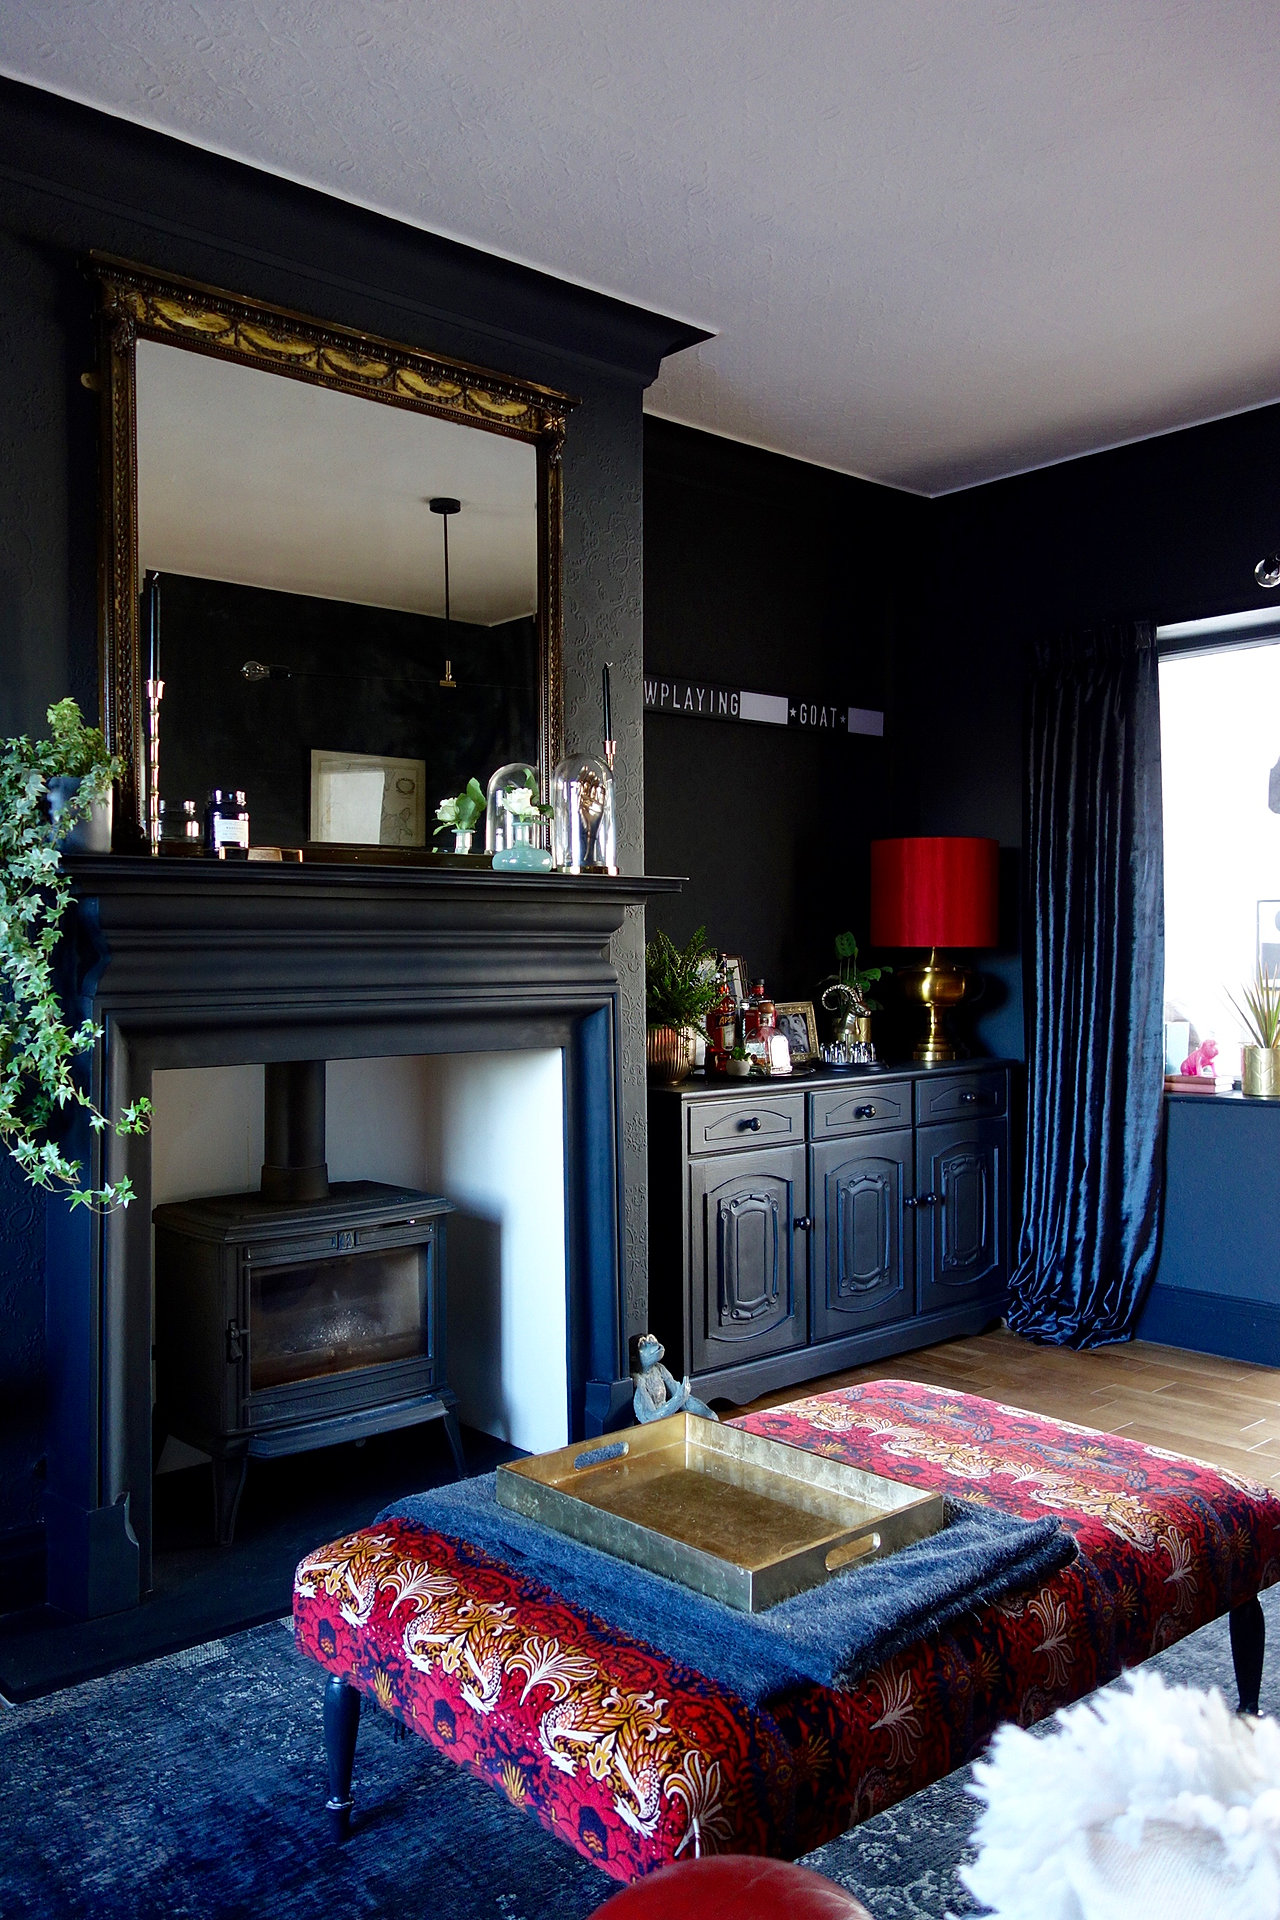 Making Spaces Interior Design Leeds West Yorkshire Living Spaces